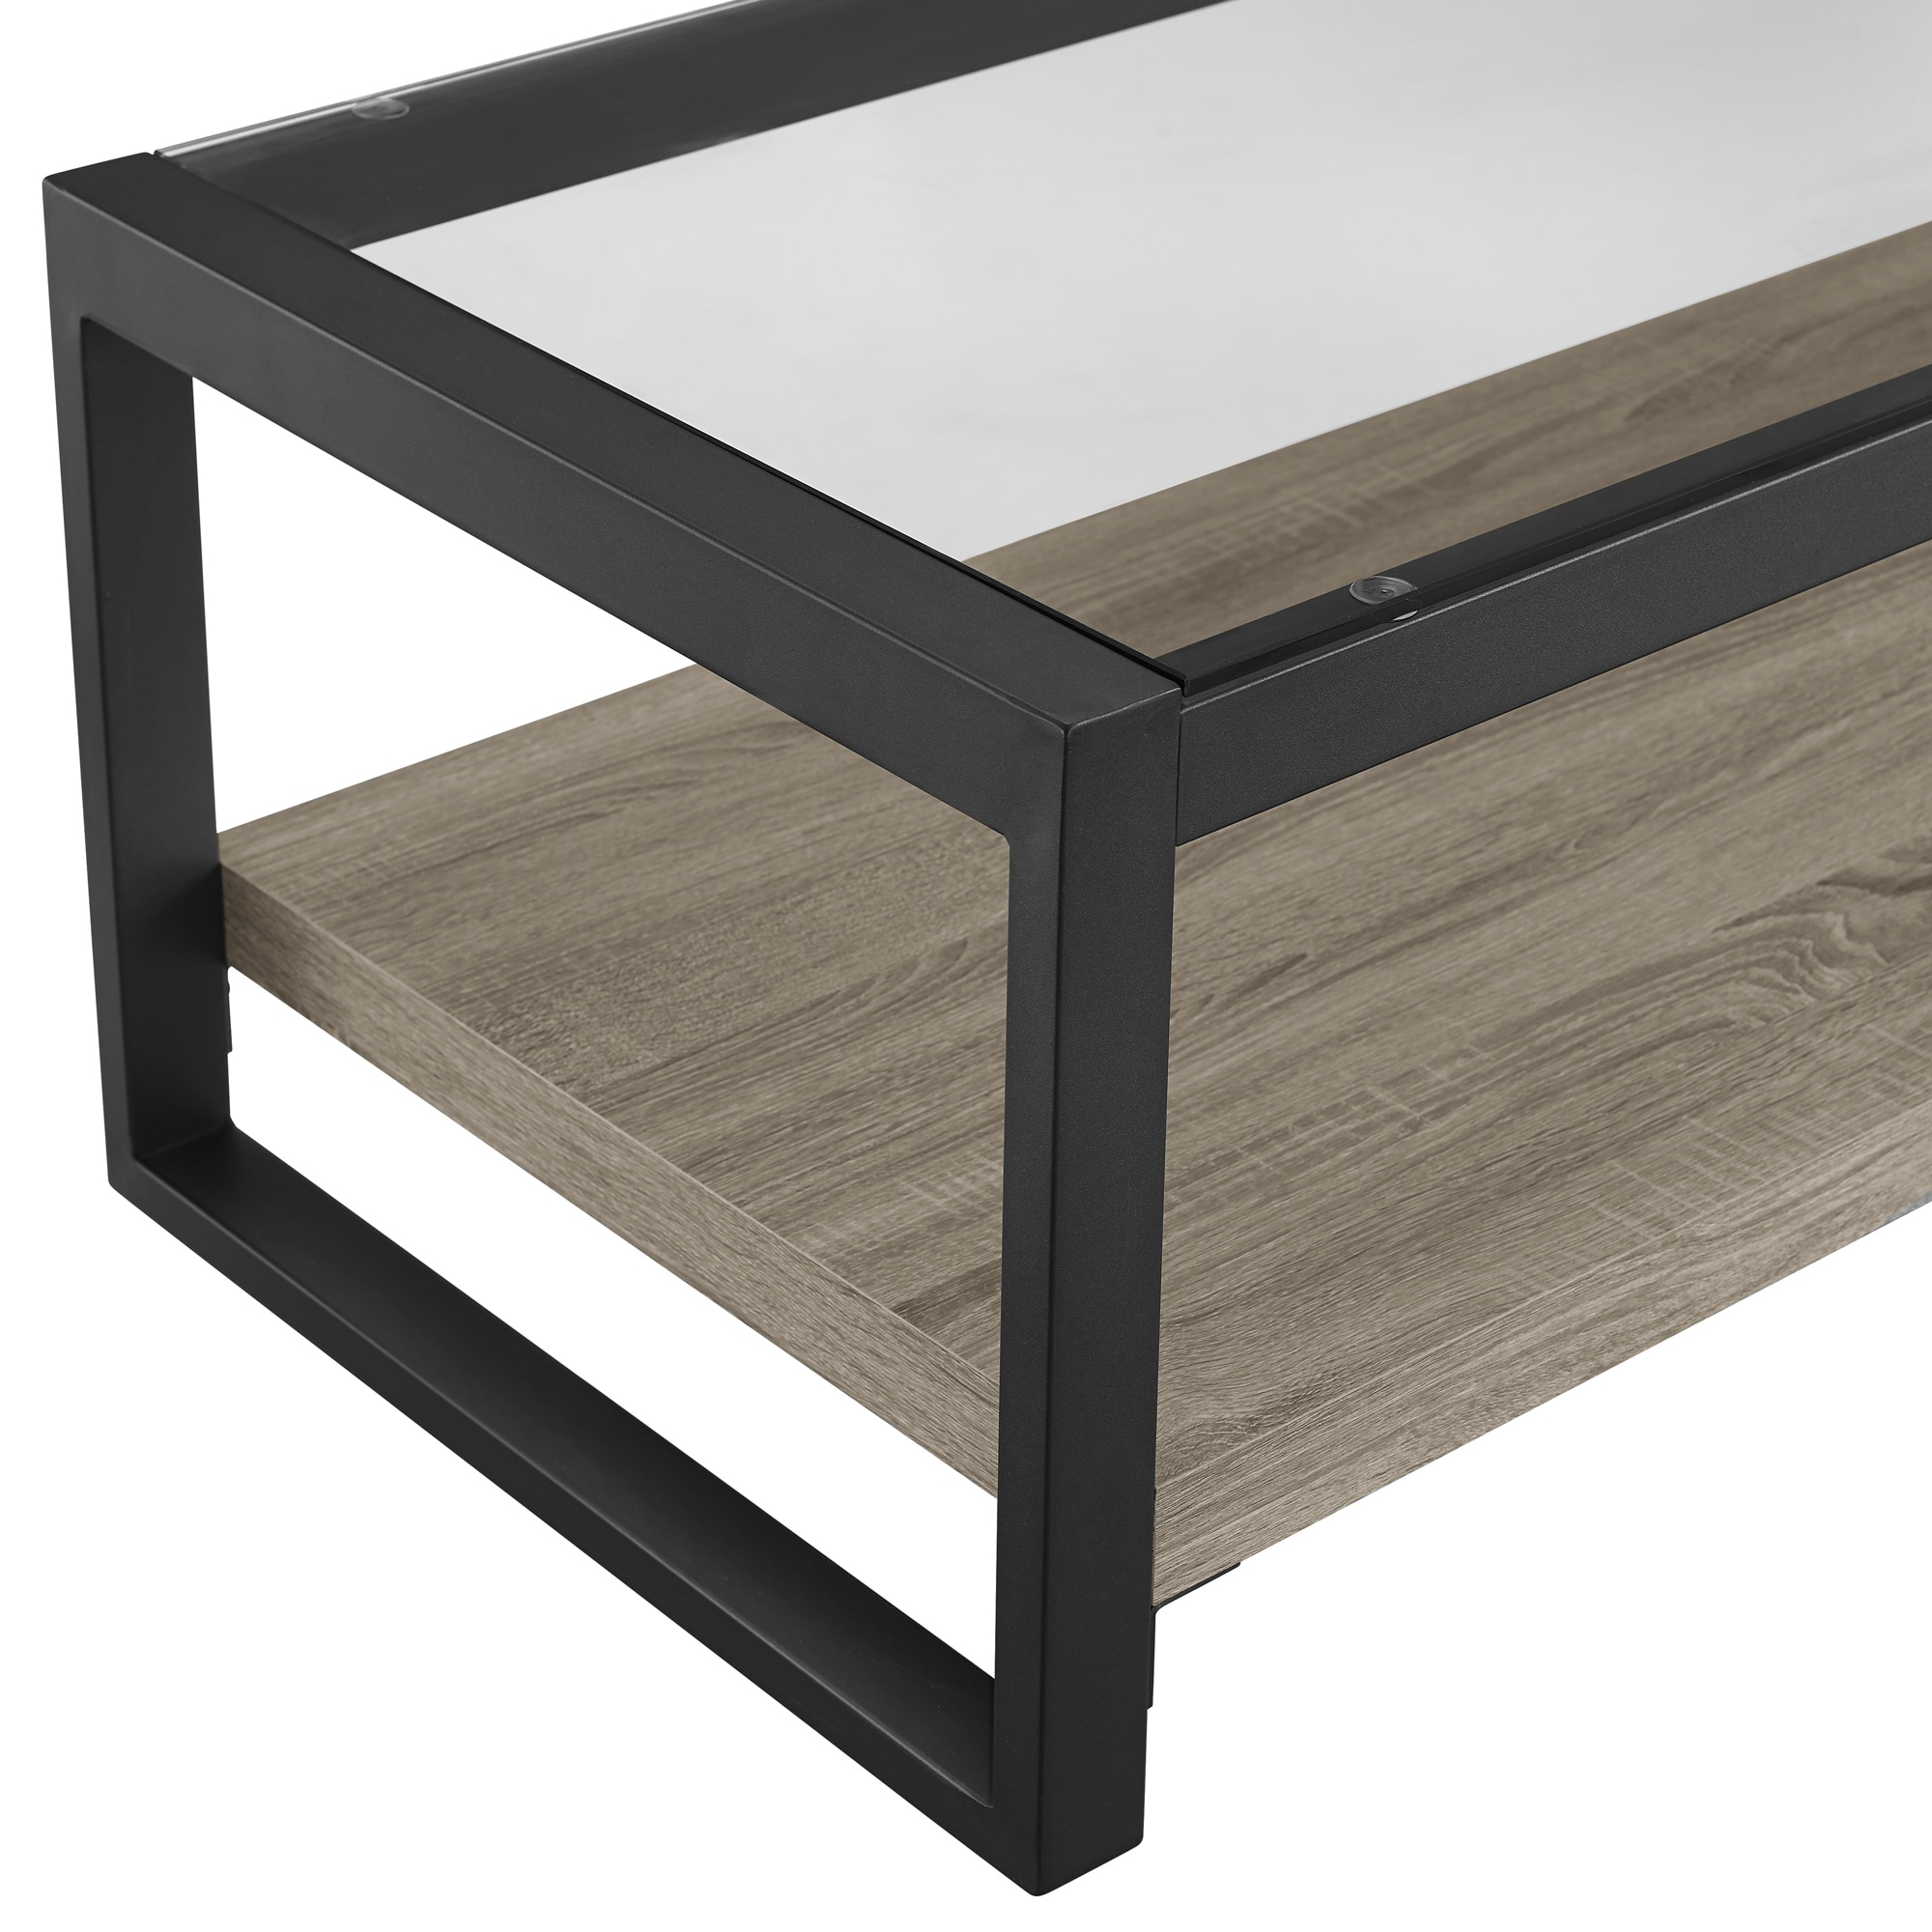 48 inch Urban Blend Coffee Table with Glass Top Free Shipping